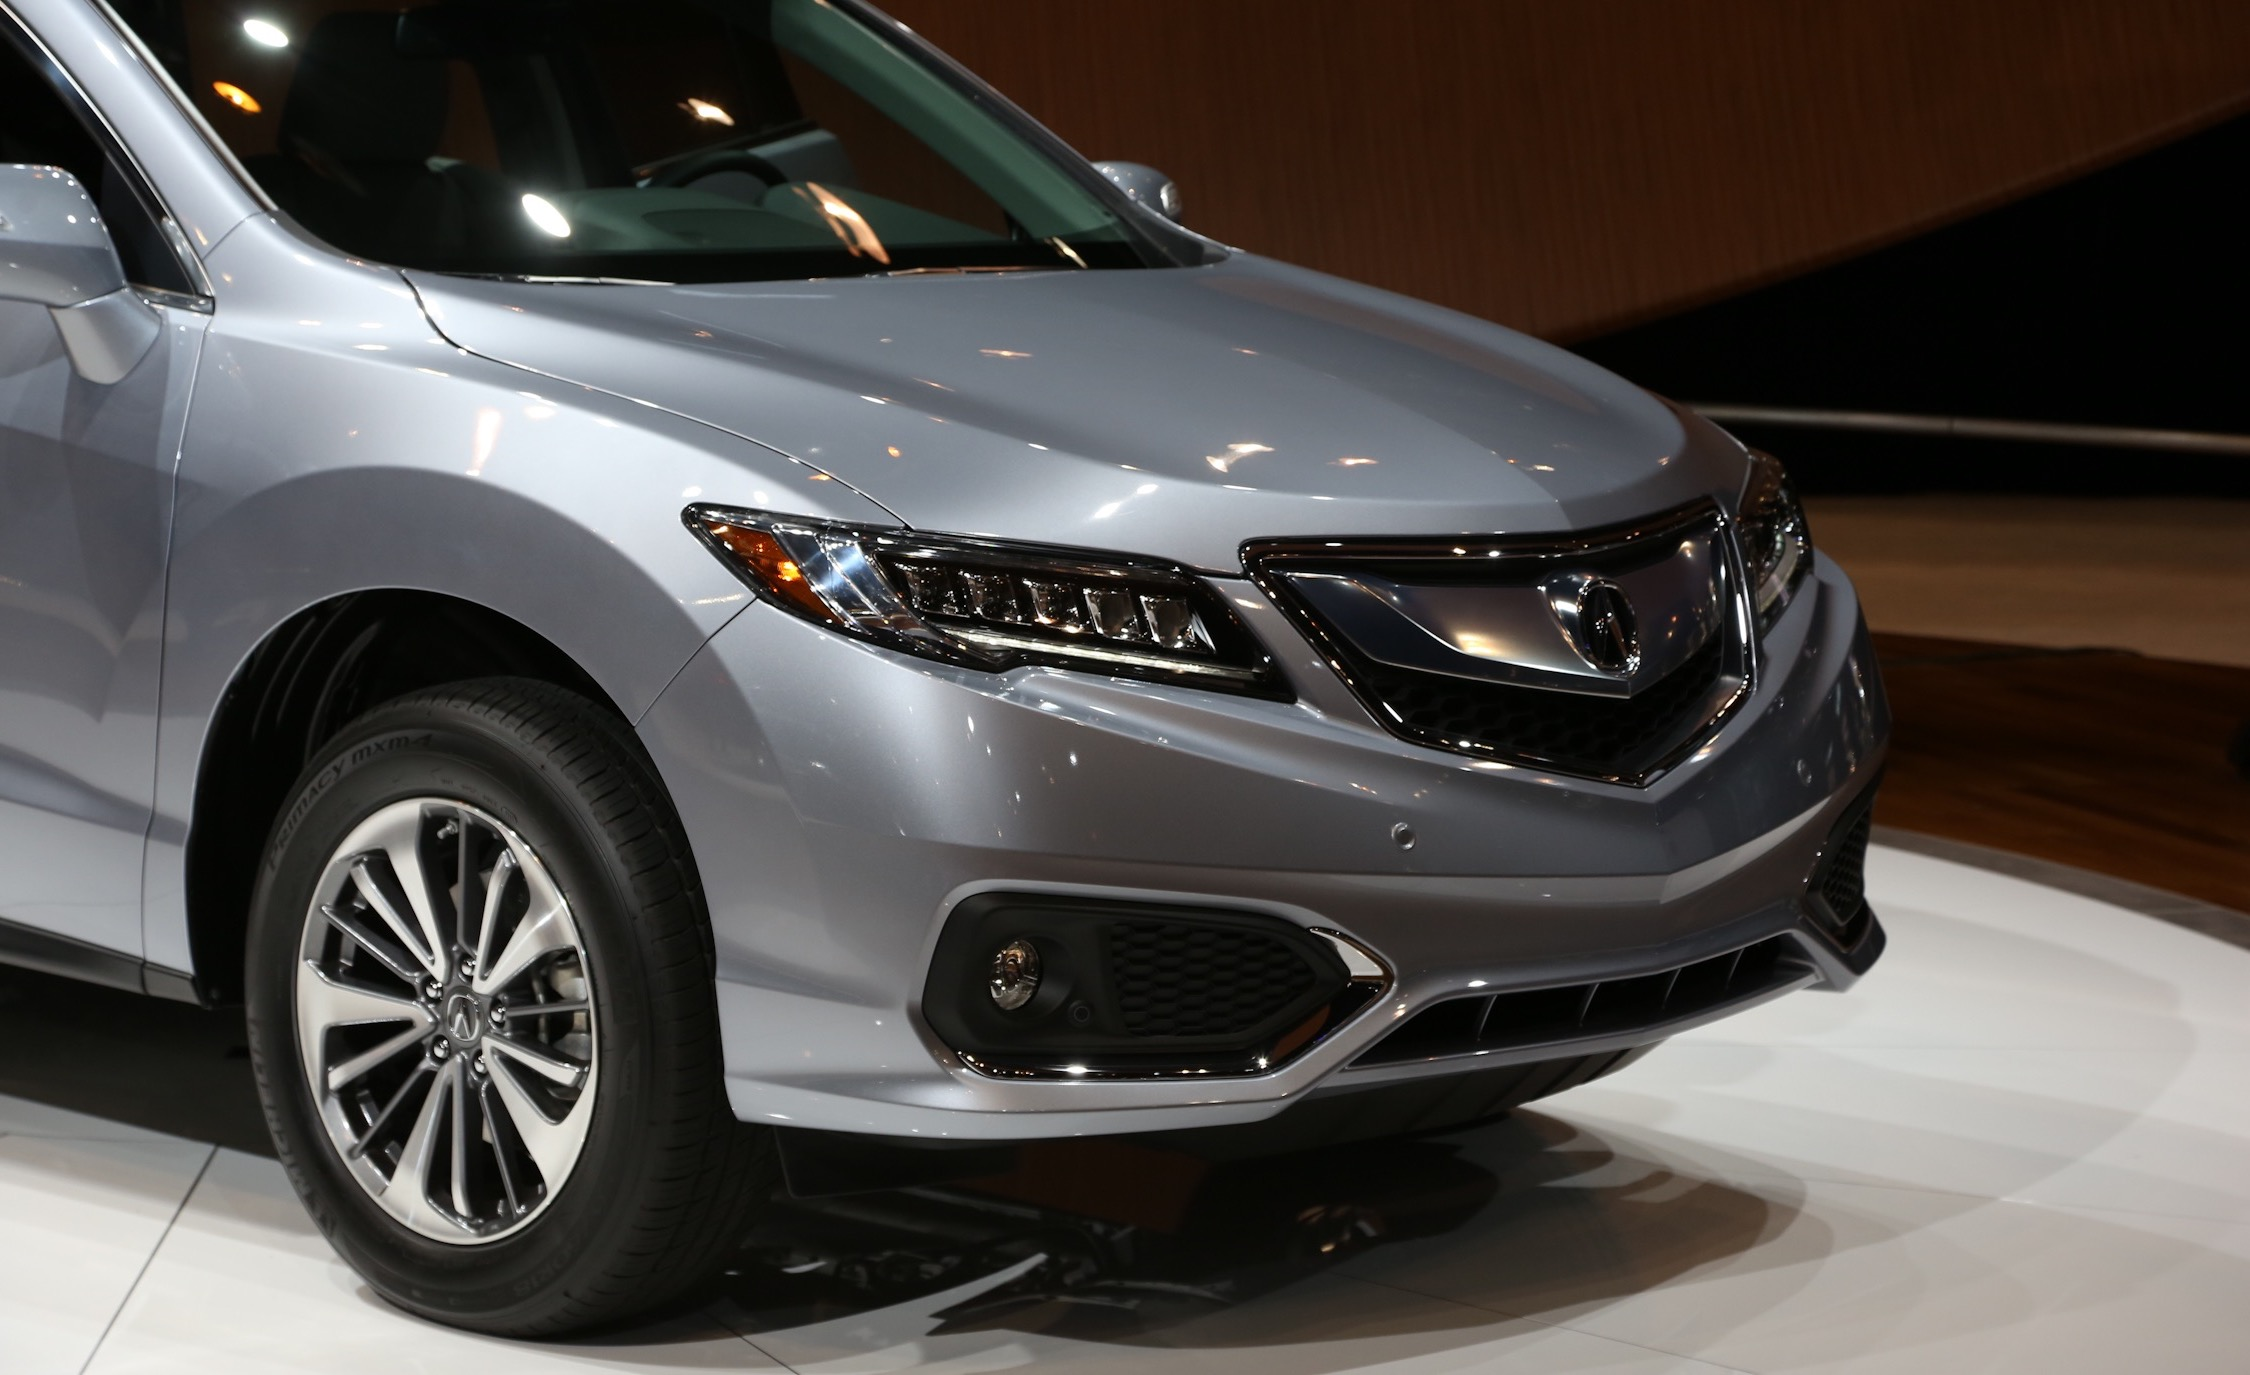 buy prices and specs plus rdx package drive acura wheel acurawatch all